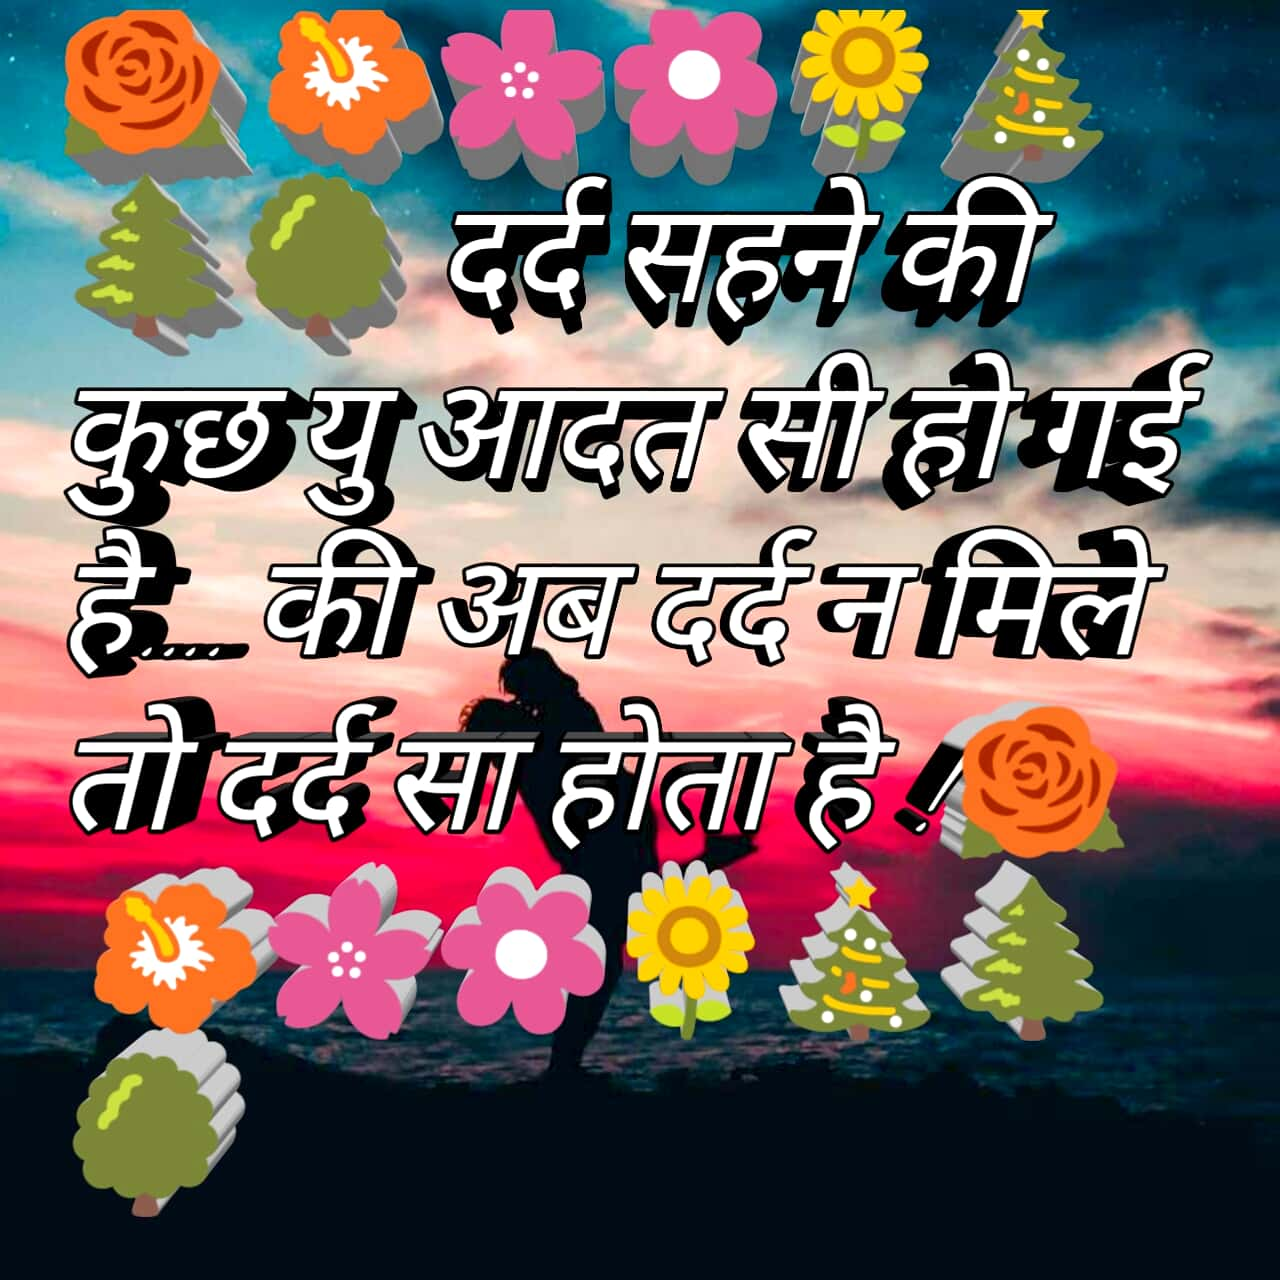 2020 Heartbroken Sad Love Shayari In Hindi With Images Status Pictures Very Sad Love Shayari In Hindi With Images Pictures Wallpaper